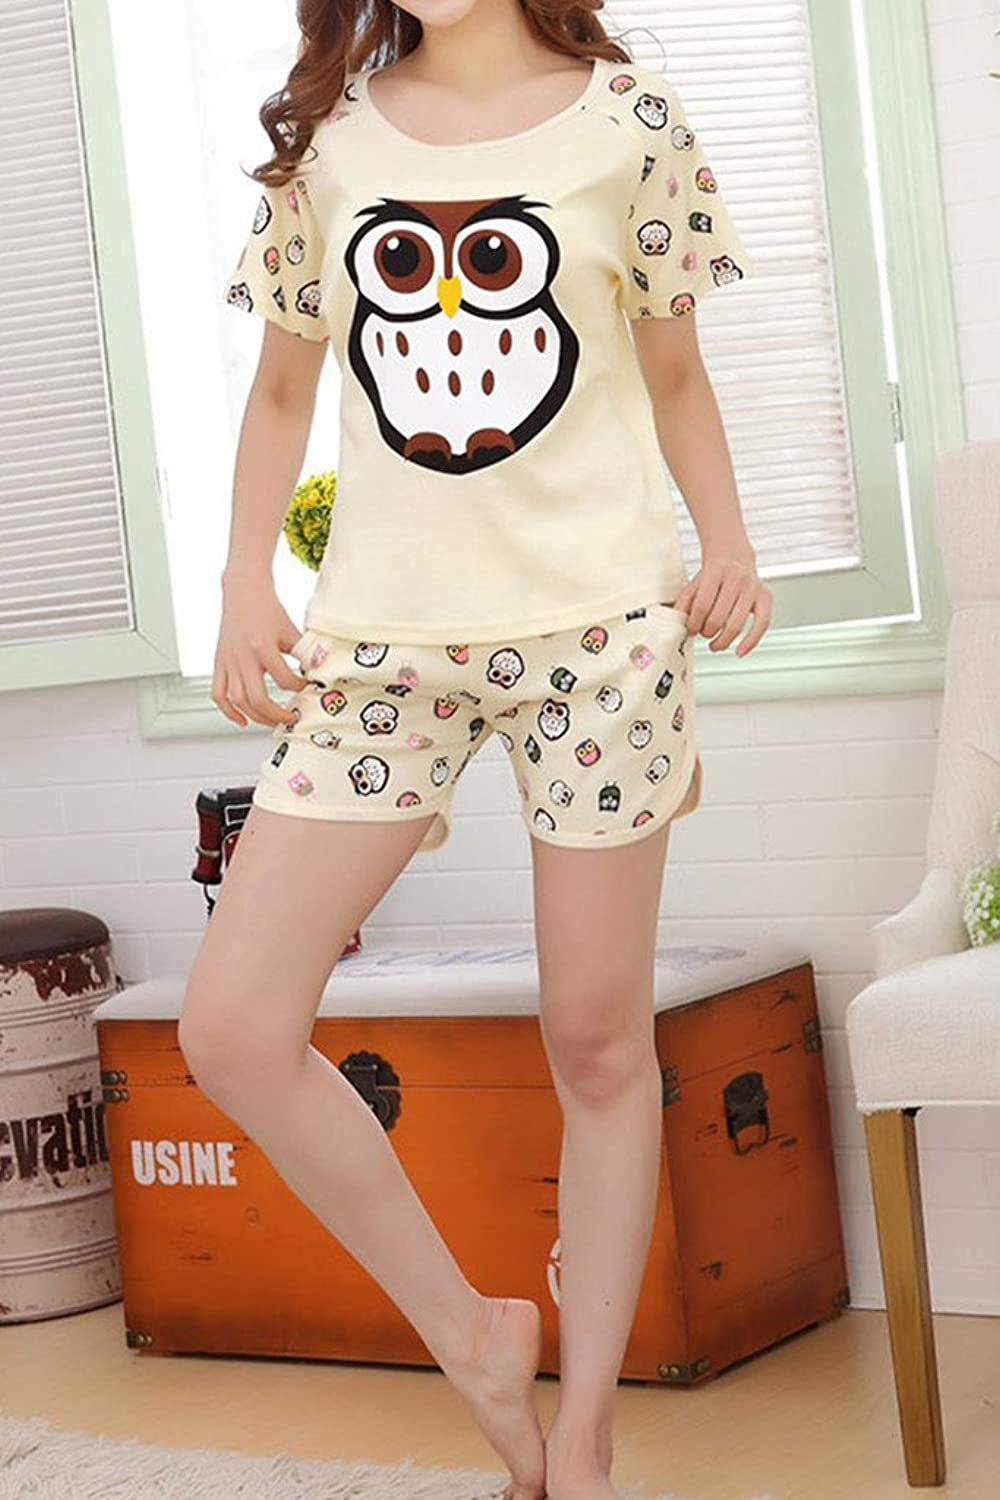 Lasher Womens Summer Cute Owl Printed Pajama Sets Soft Top with Shorts Yellow M at Amazon Womens Clothing store: